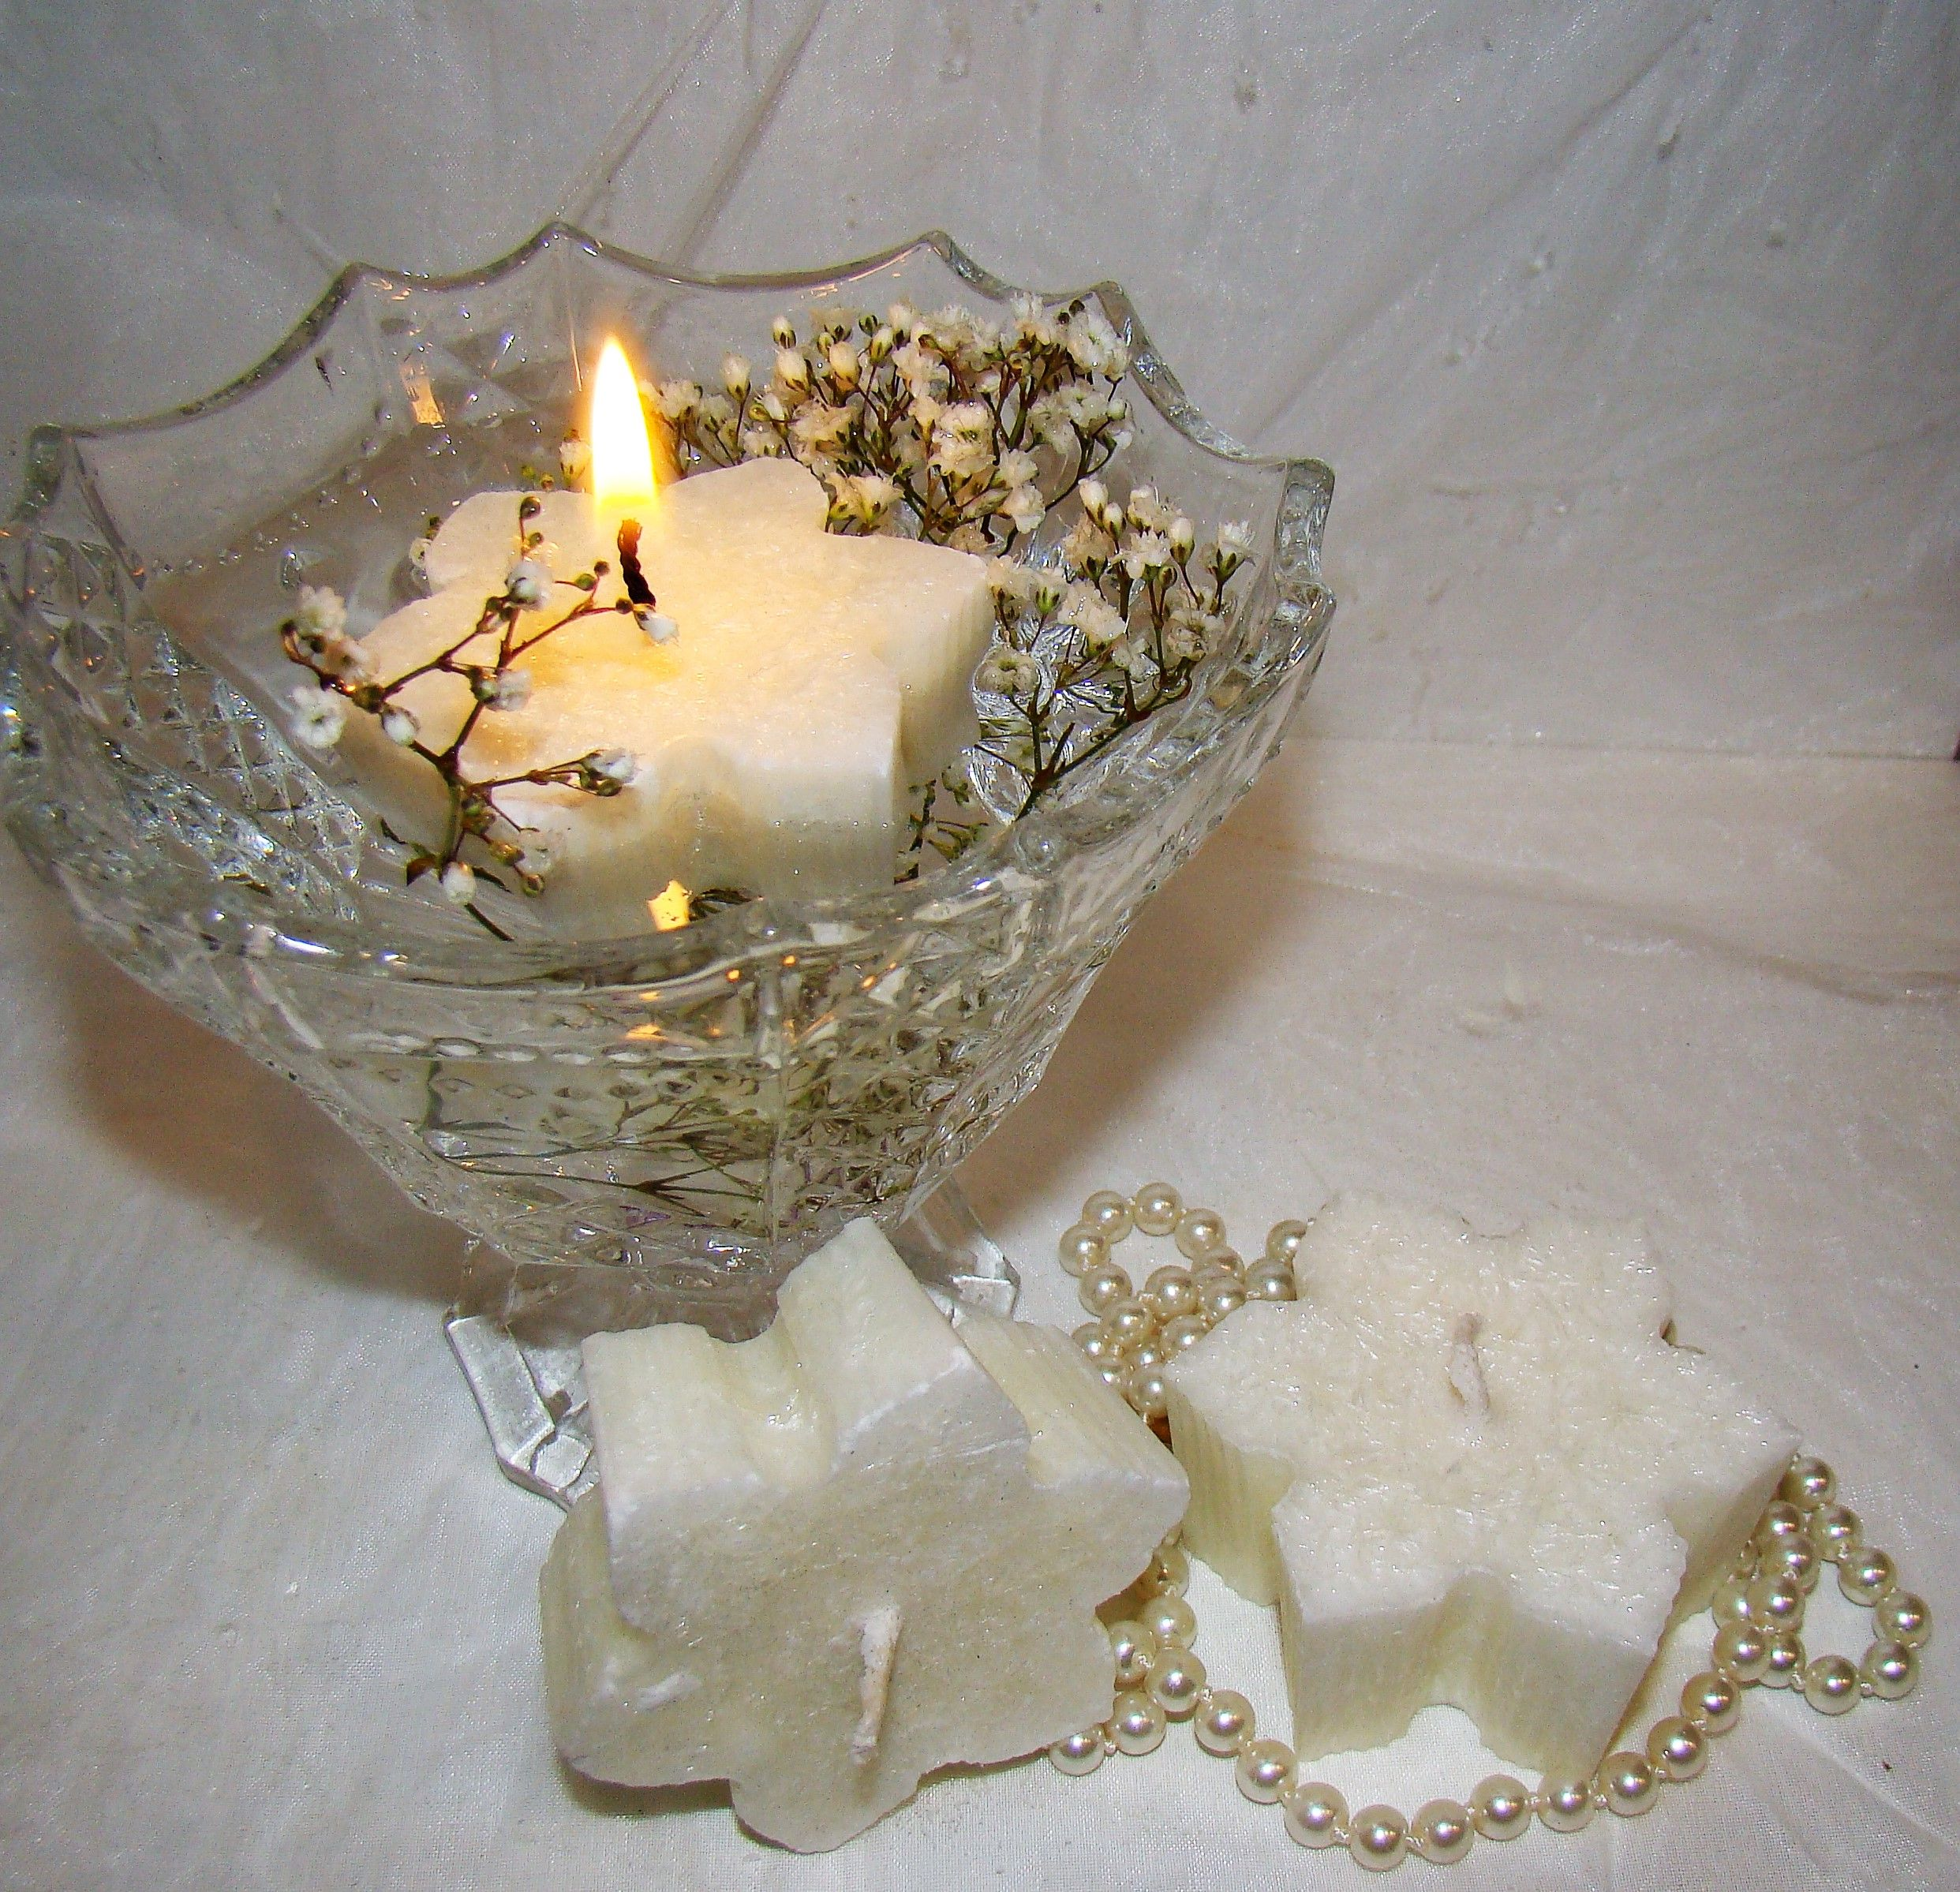 White Candle Star Christmas Candle Wedding Christmas Centerpiece Table Decor Candle Gift Star Table Decor Floating Candle Christmas Decor Floating Candles Wedding Candles Candles